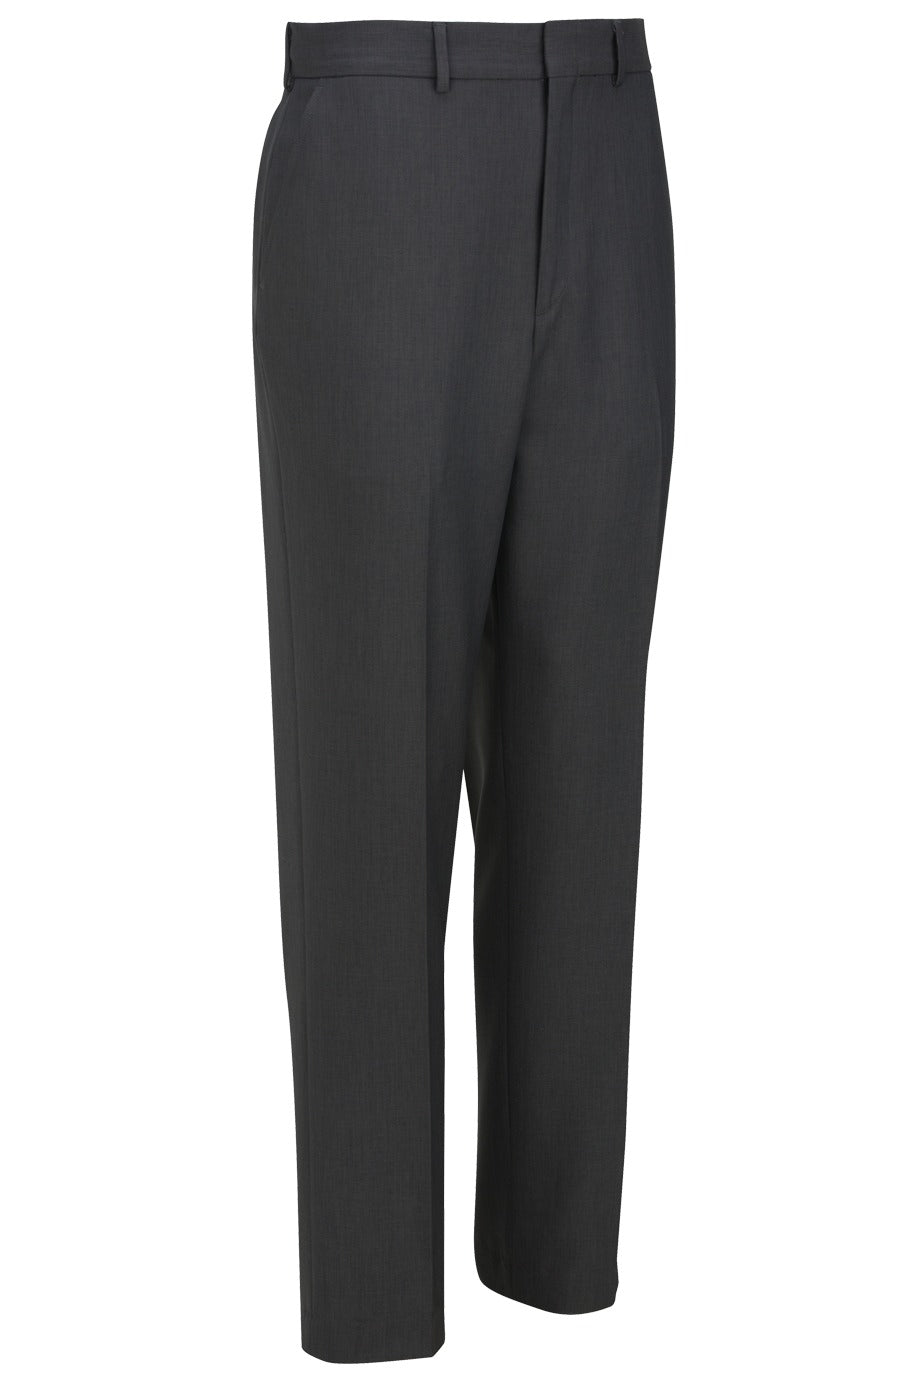 34 UR Edwards Mens Wrinkle Resistant Pleated Pant Dark Navy